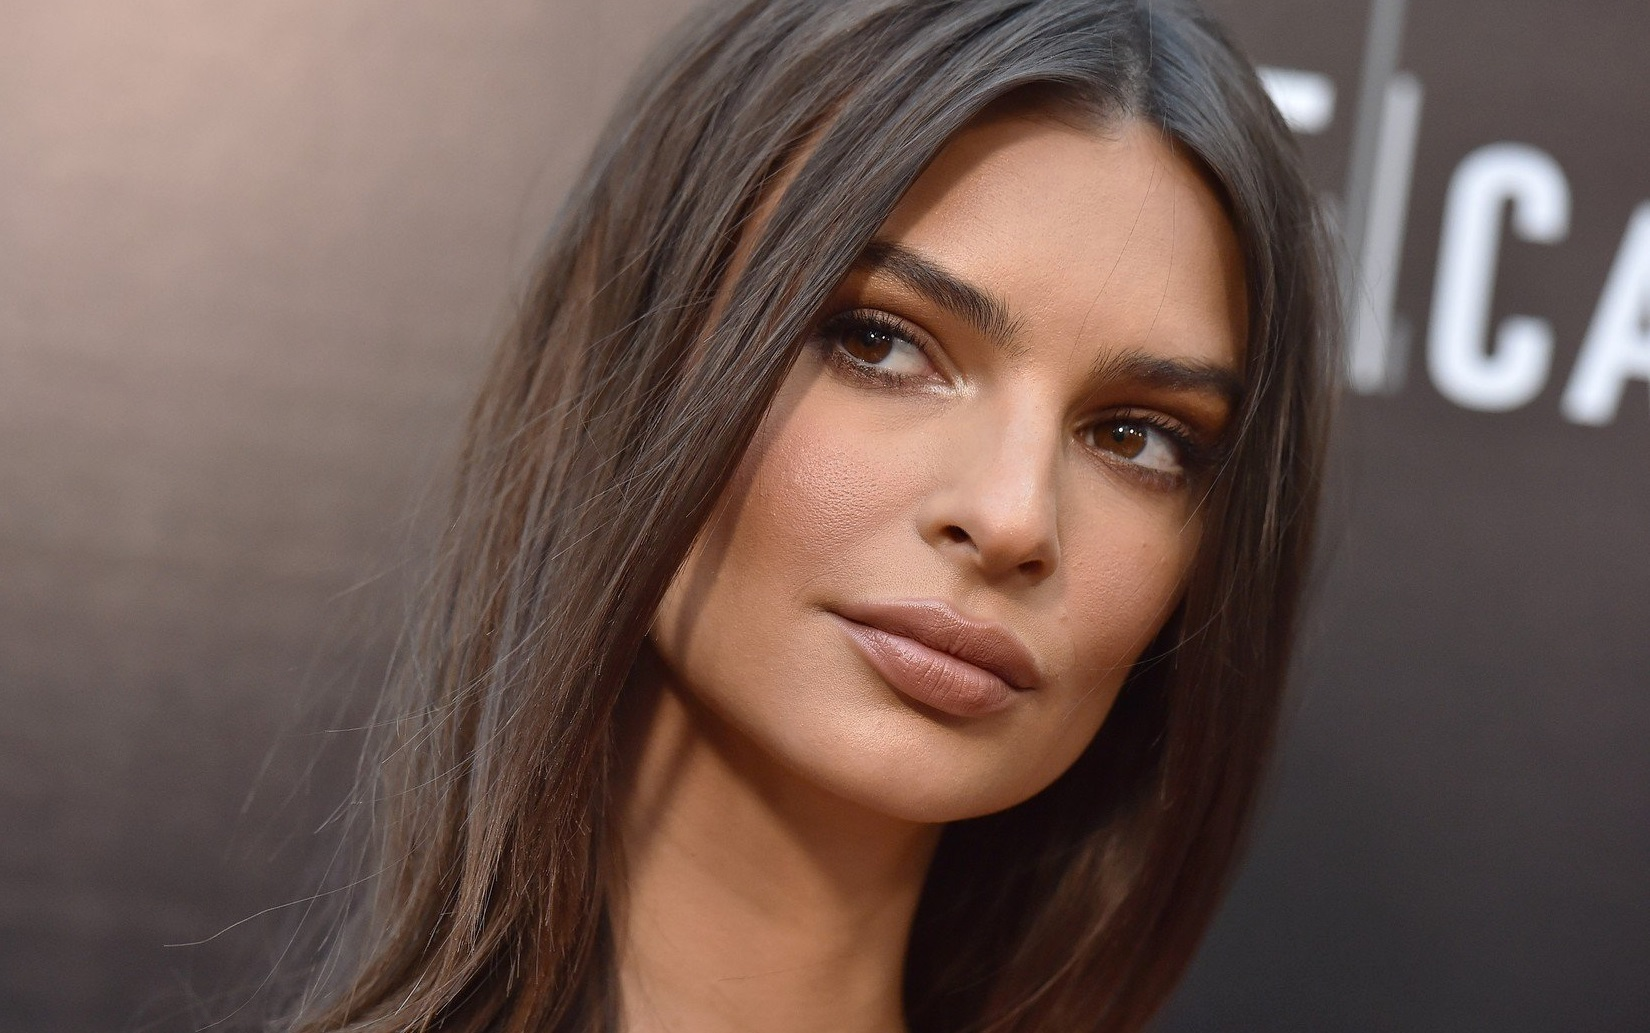 """Premiere of Vertical Entertainment's """"In Darkness"""". ArcLight Hollywood, Hollywood, California. Pictured: Emily Ratajkowski. EVENT May 23, 2018 Job: 180523A1, Image: 372803495, License: Rights-managed, Restrictions: 000, Model Release: no, Credit line: Profimedia, Bauer Griffin"""